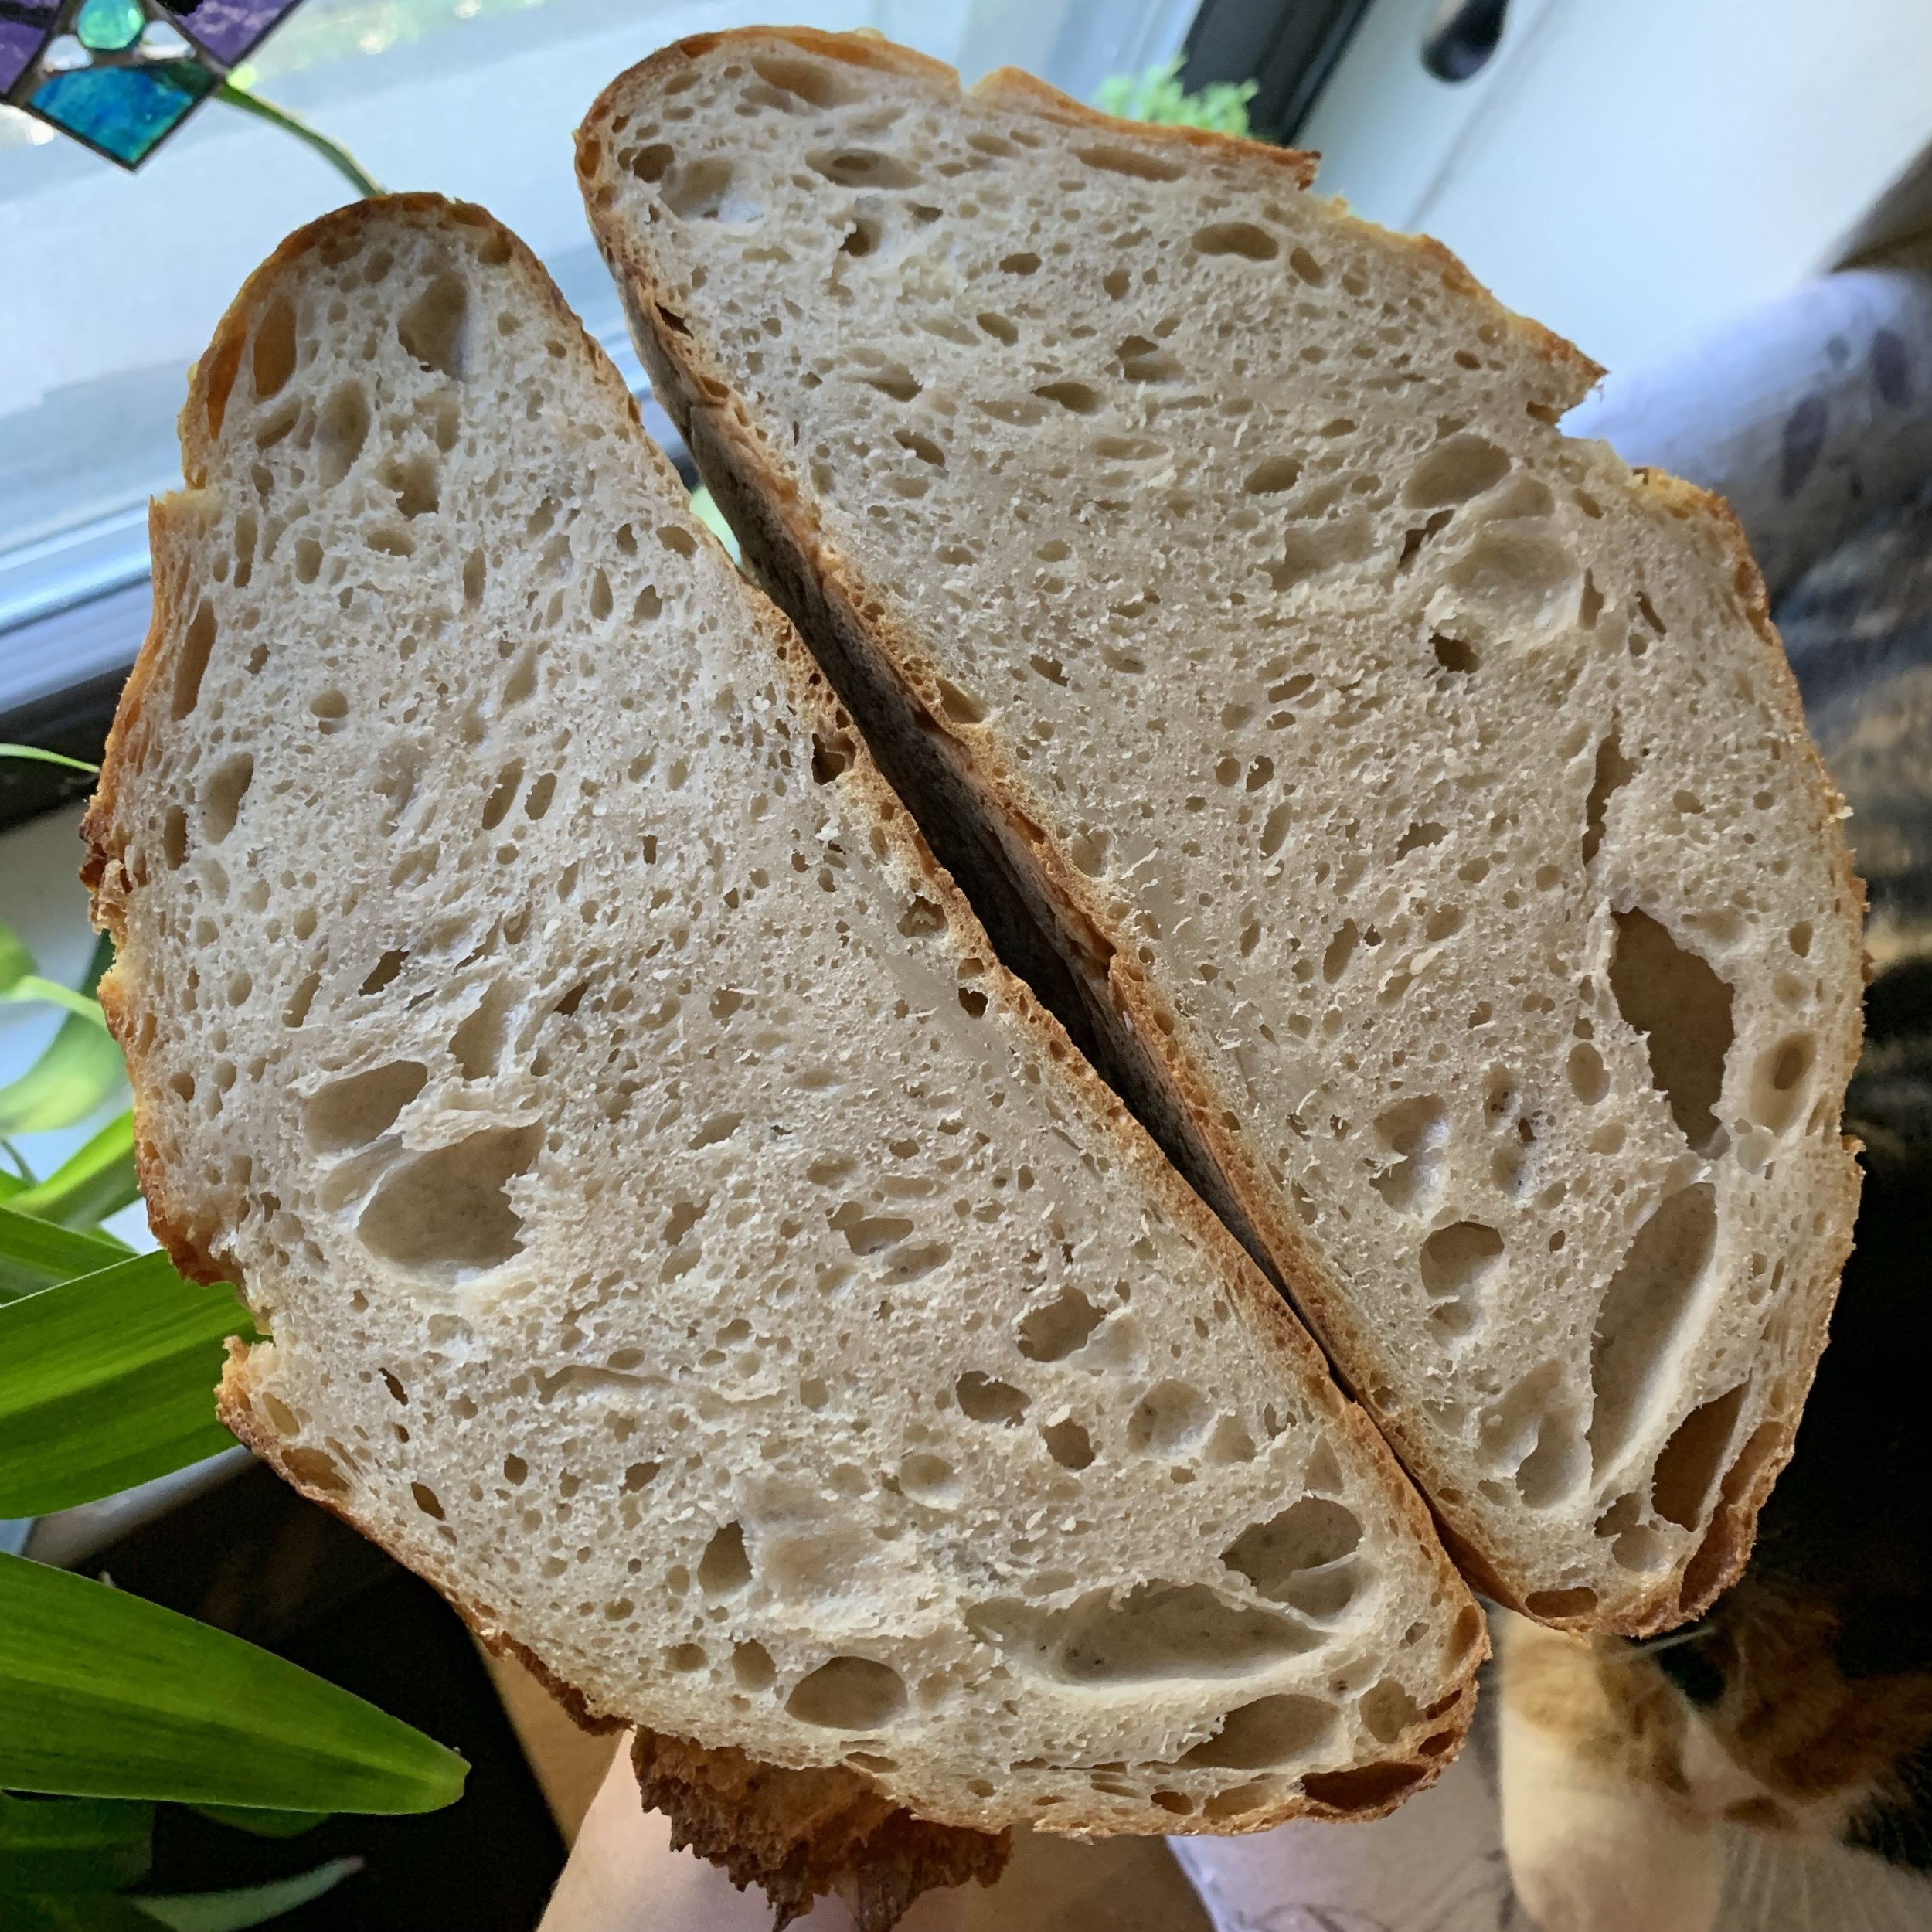 This loaf is made from 750g unbleached white flour and 250g whole wheat flour.